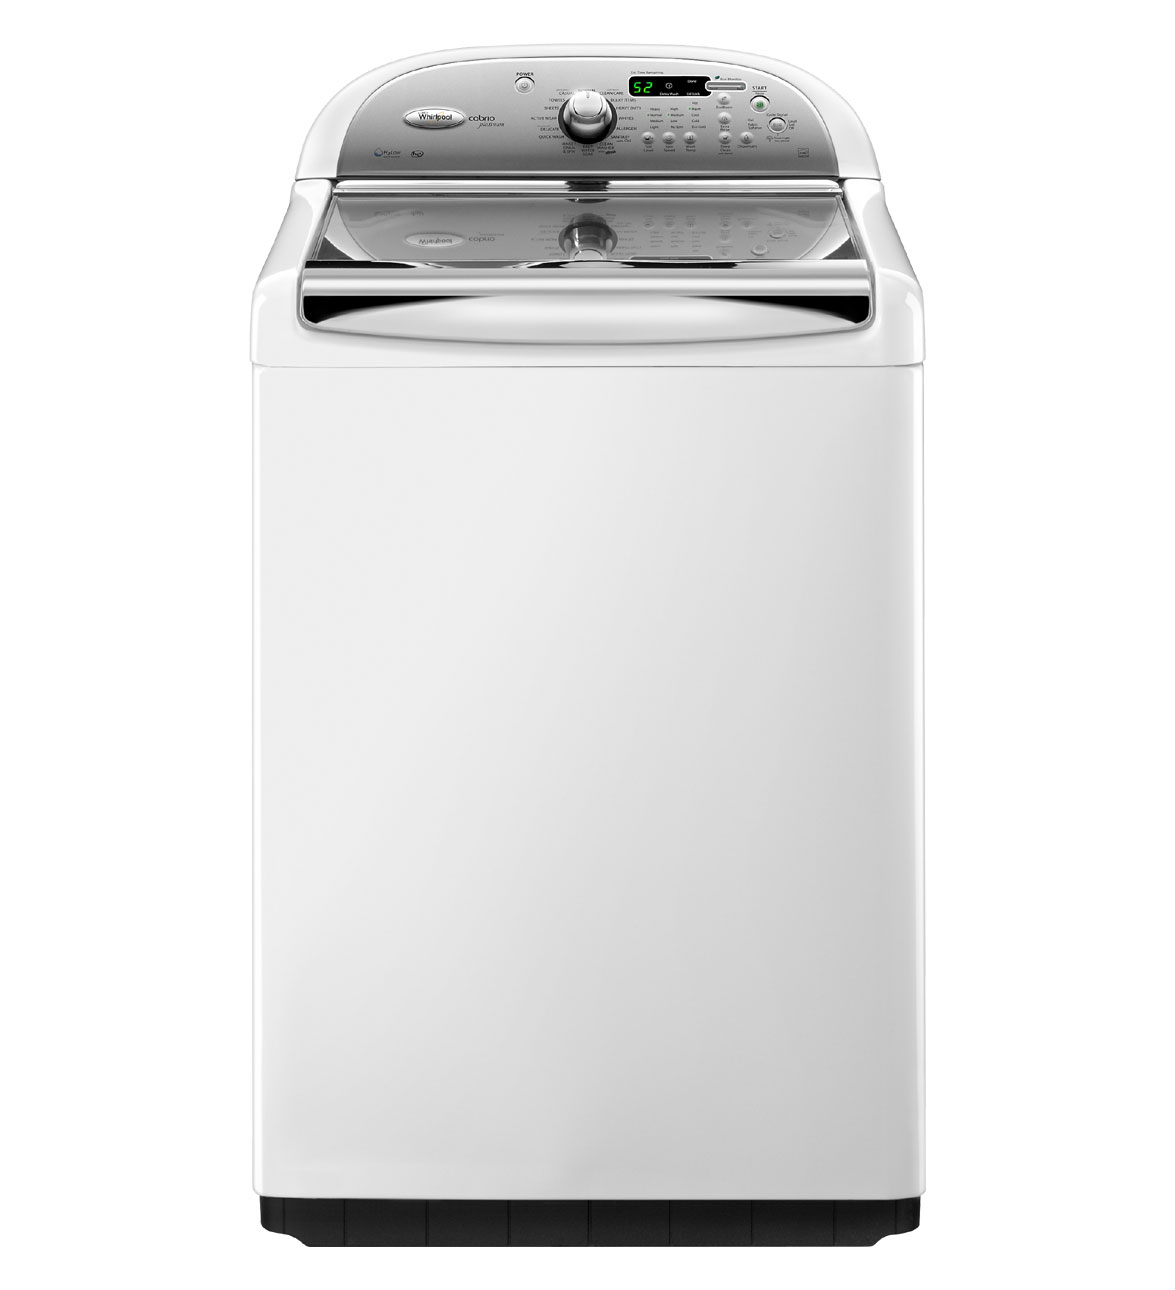 Review of Whirlpool Cabrio Platinum 4.6 cu ft High-Efficienc ...